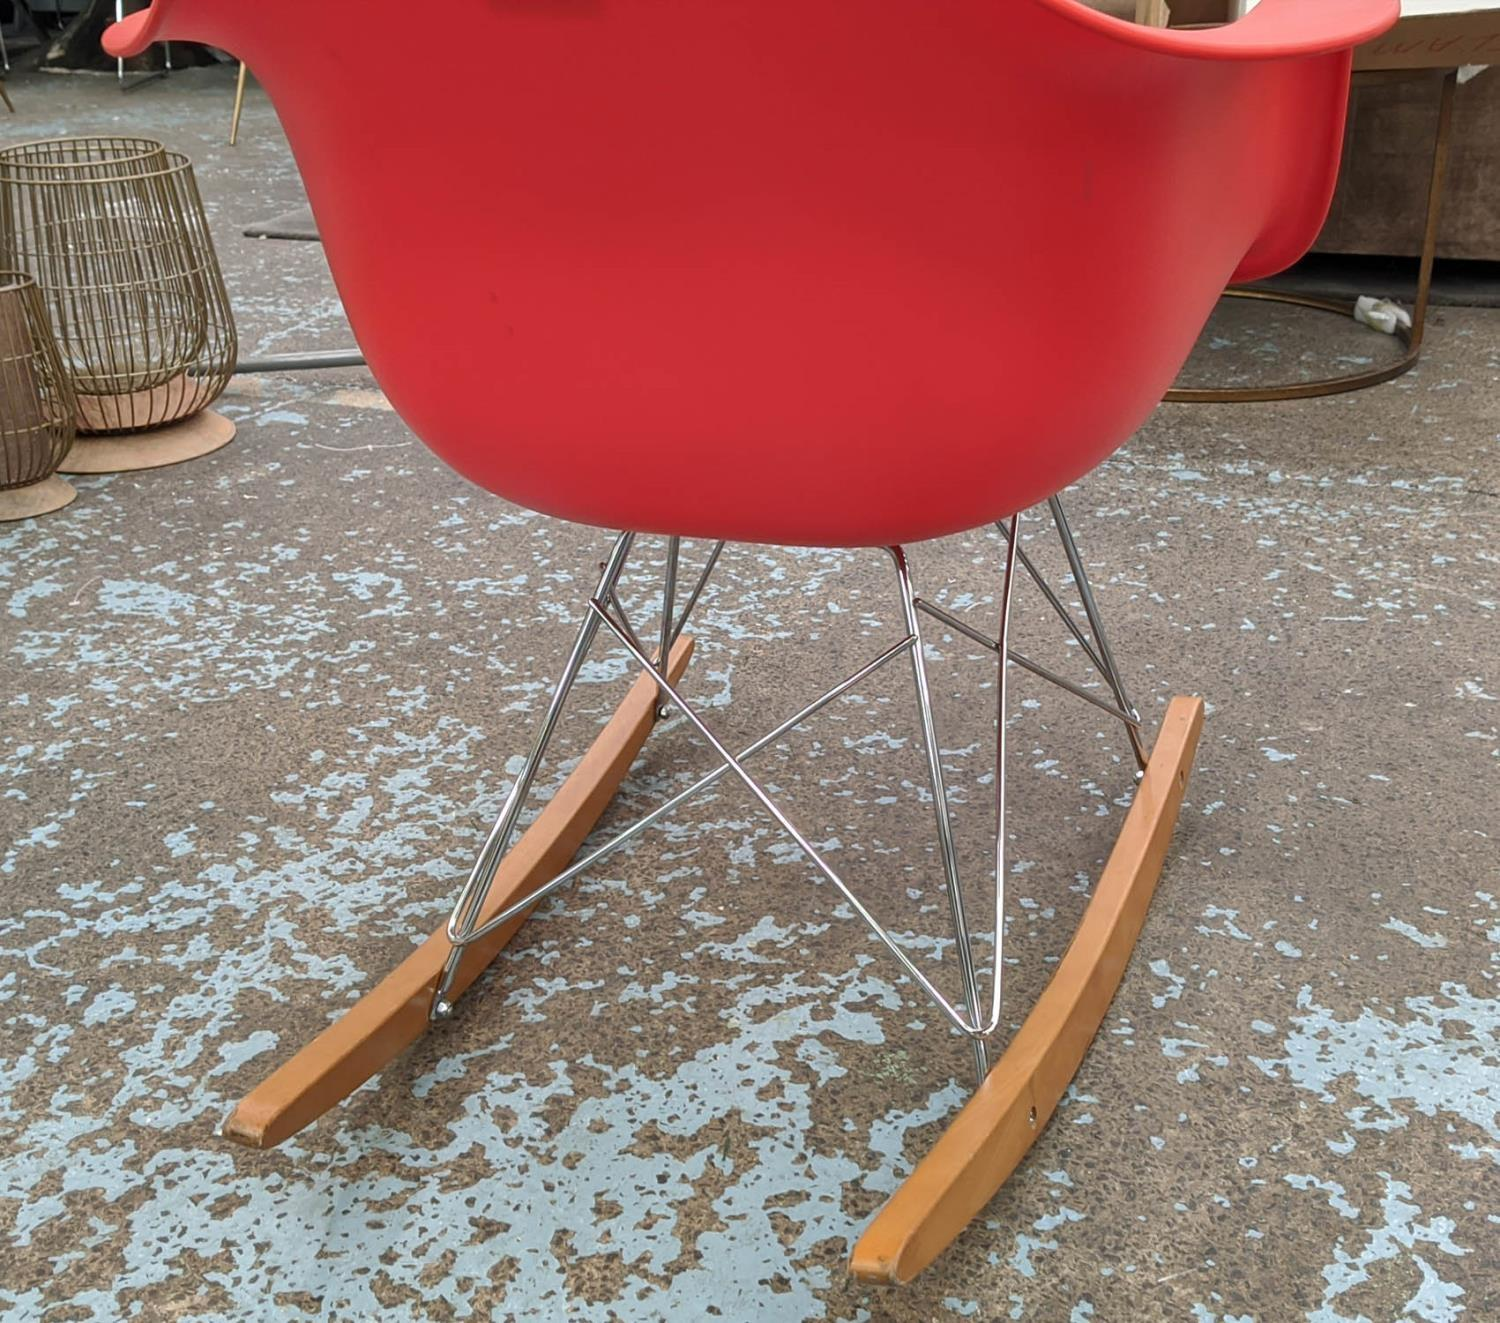 VITRA RAR ROCKING CHAIR, by Charles and Ray Eames, red, 62cm x 70cm H.(scratch to front) - Image 3 of 4